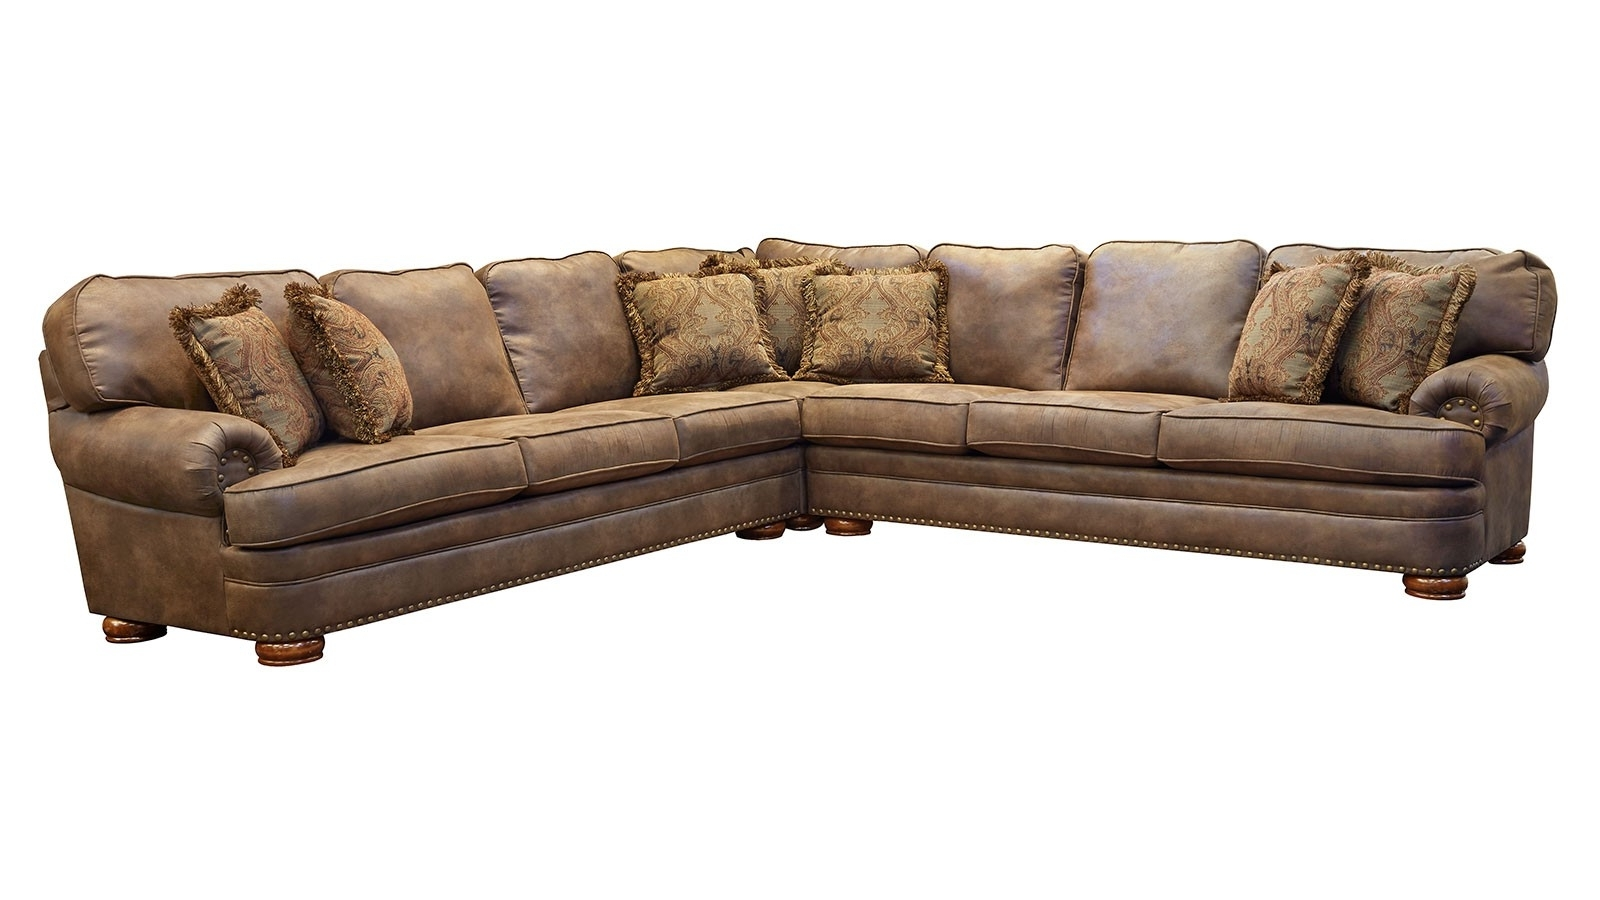 Popular El Paso Texas Sectional Sofas Regarding El Paso Sectional (View 7 of 15)